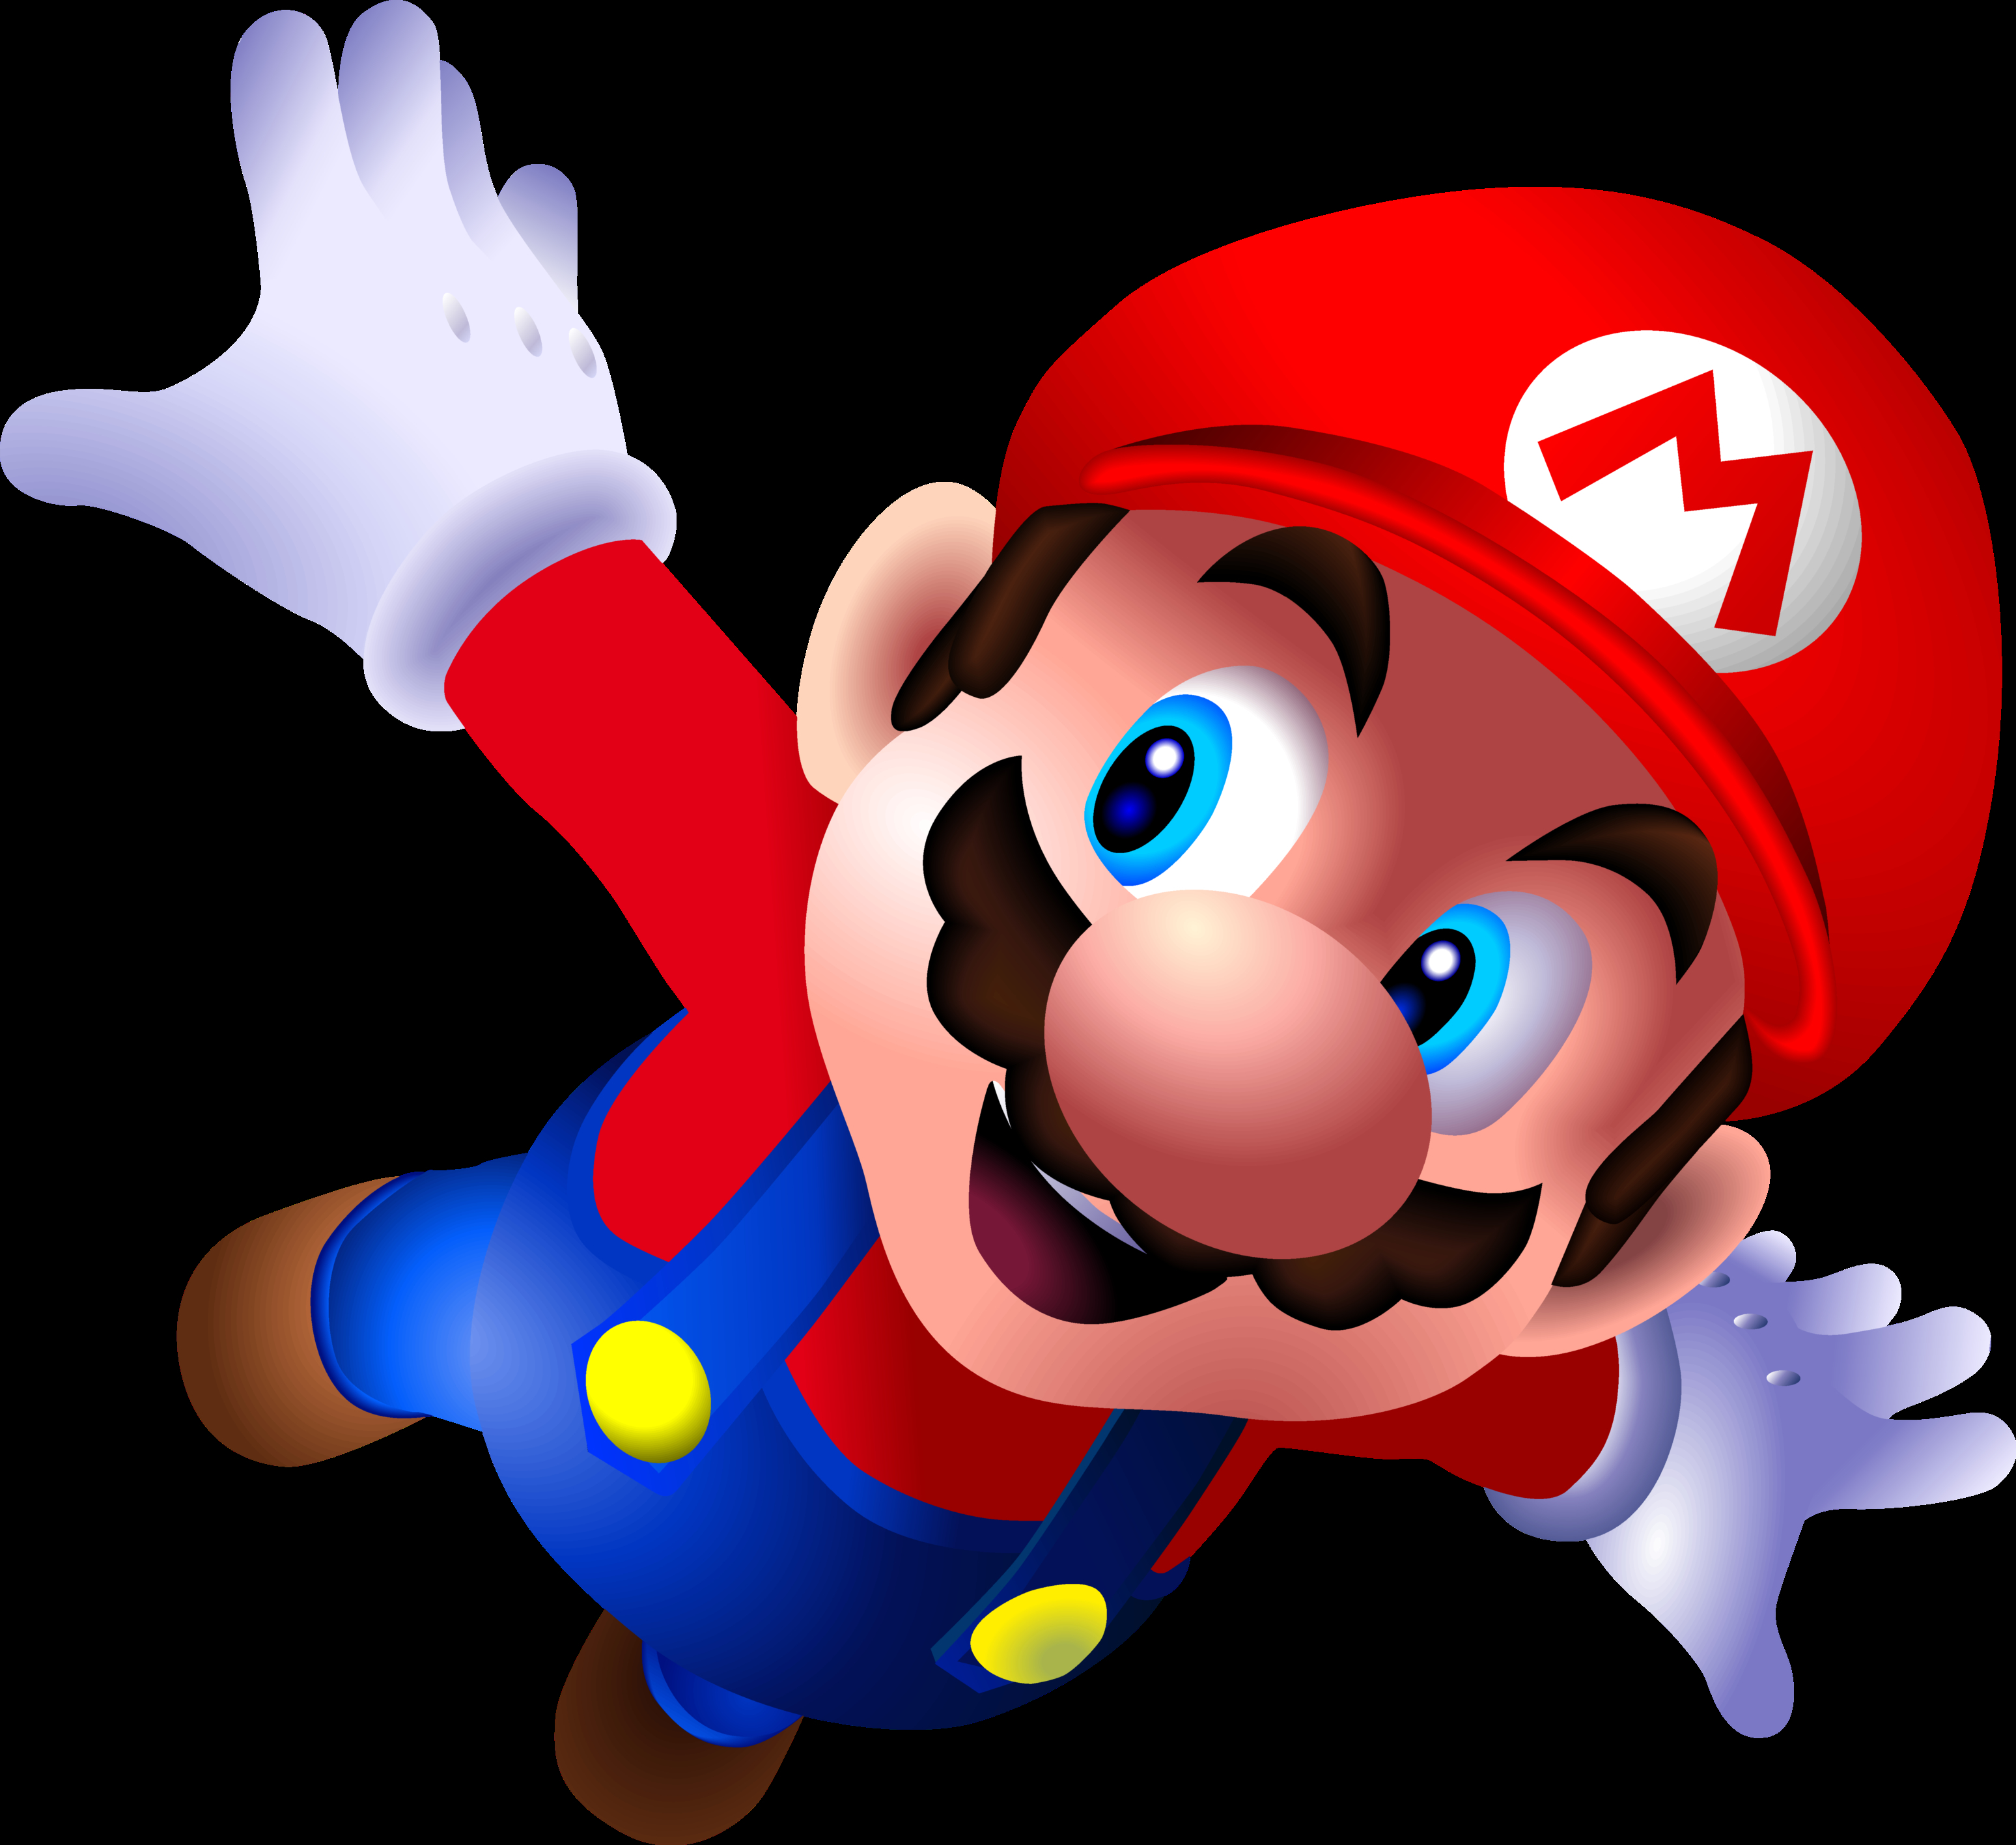 The Best Wallpaper Collection: Mario Hd Wallpaper